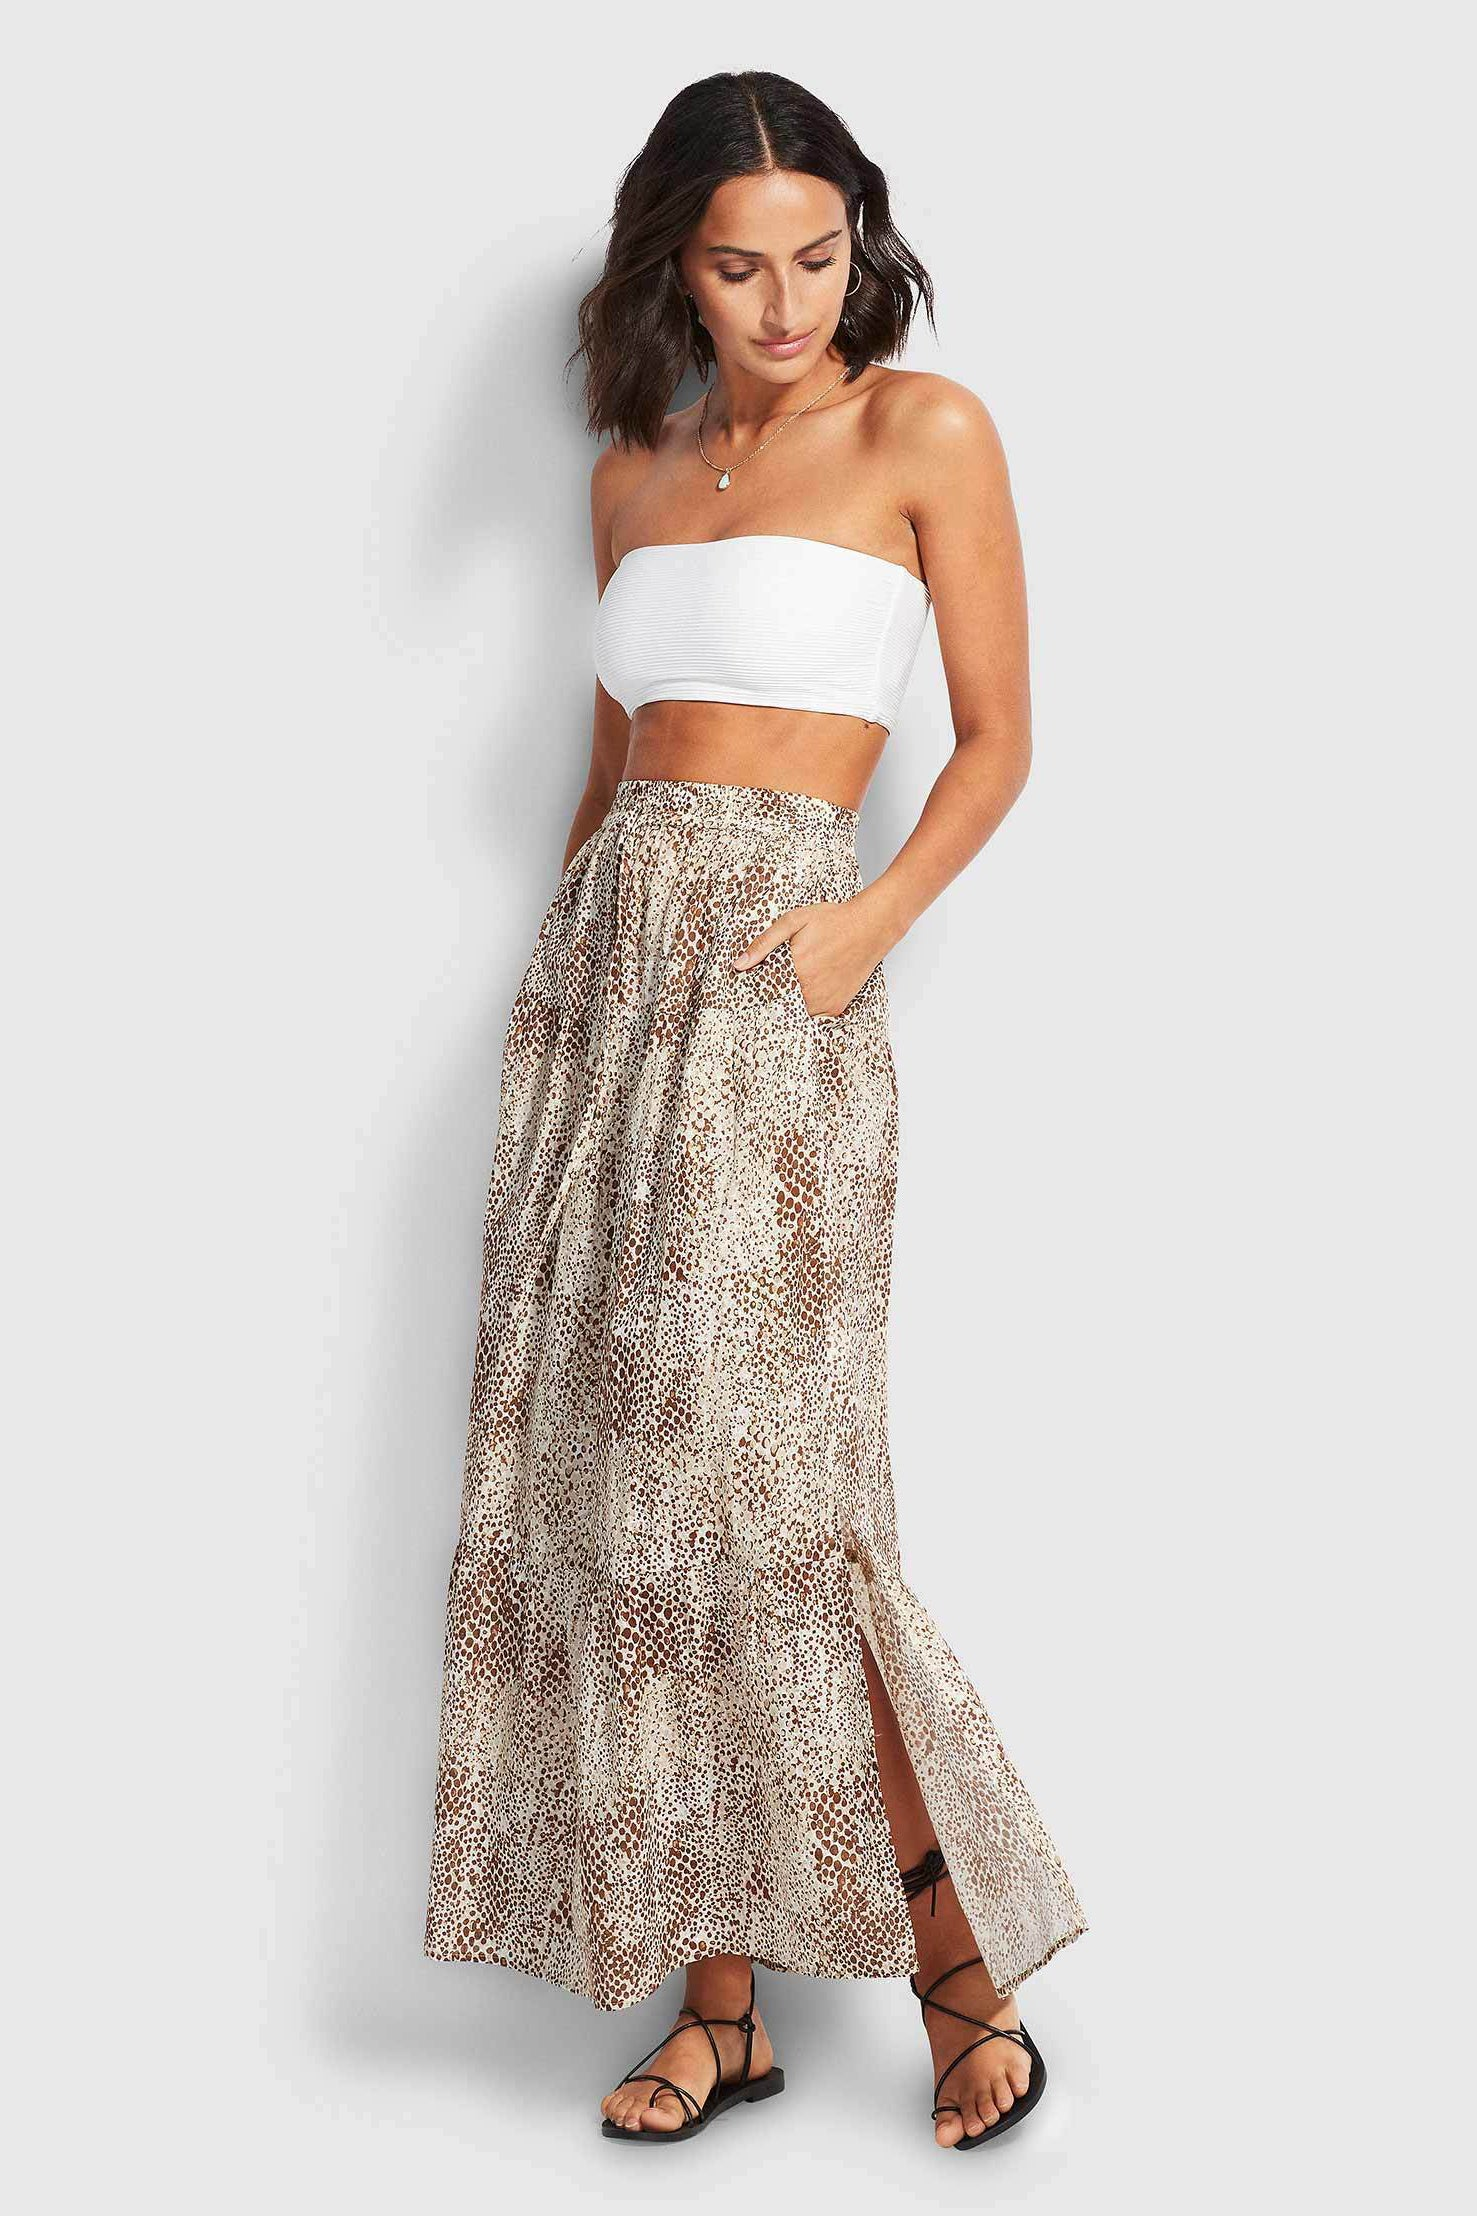 Seafolly Serpentine Tiered Skirt - Chocolate